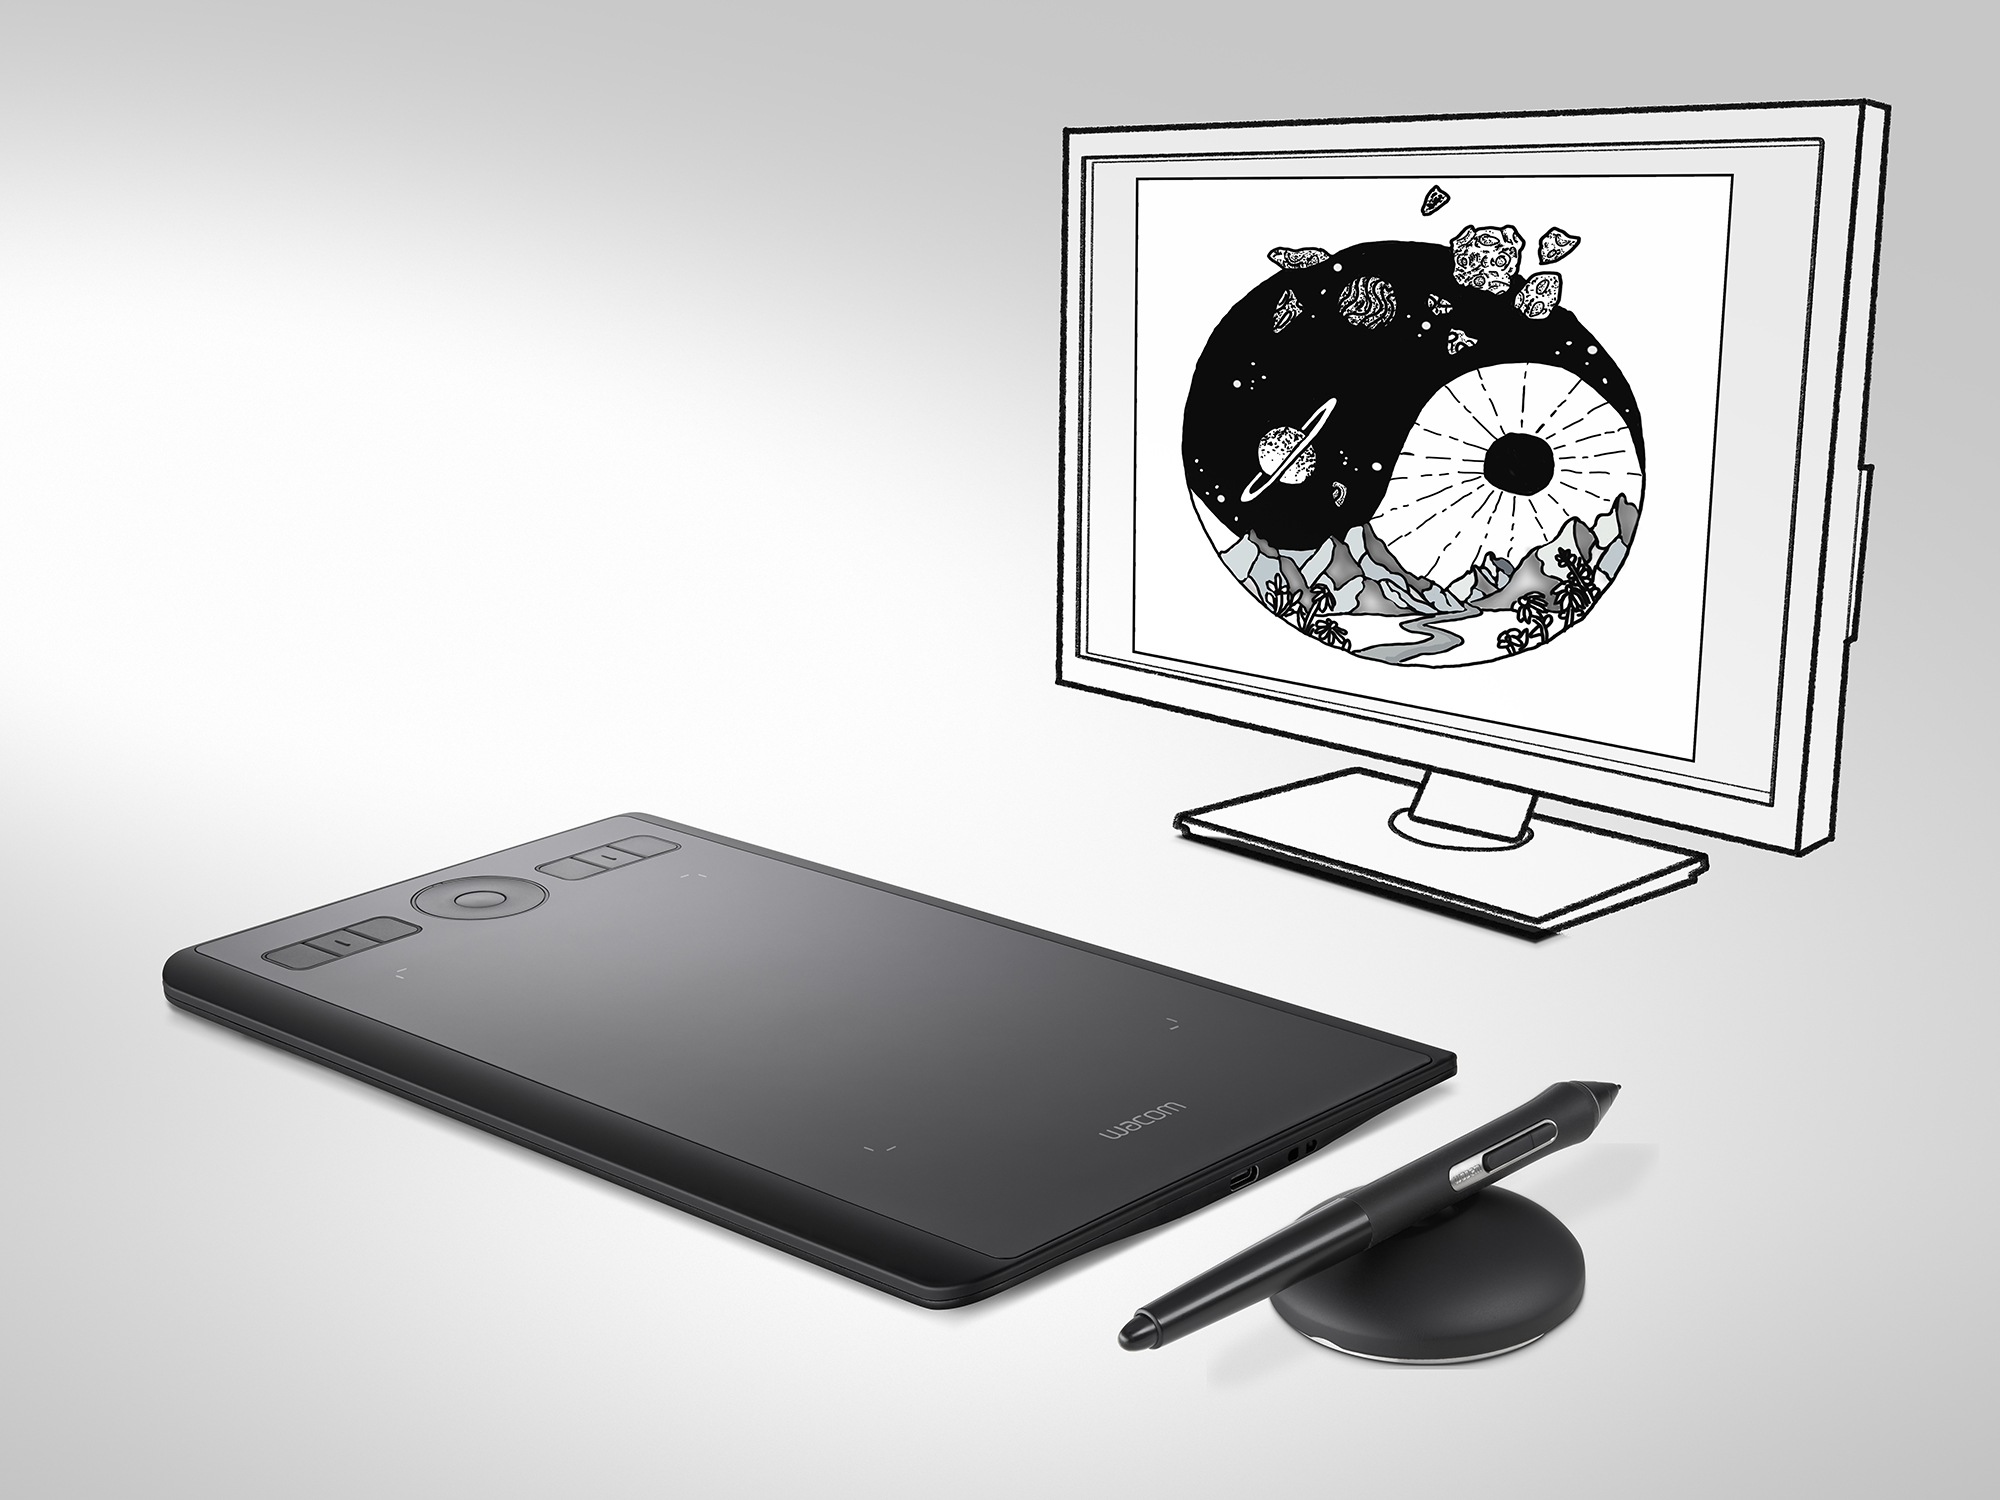 Advertising product image of Wacom Graphics Tablet by photographer Ian Knaggs